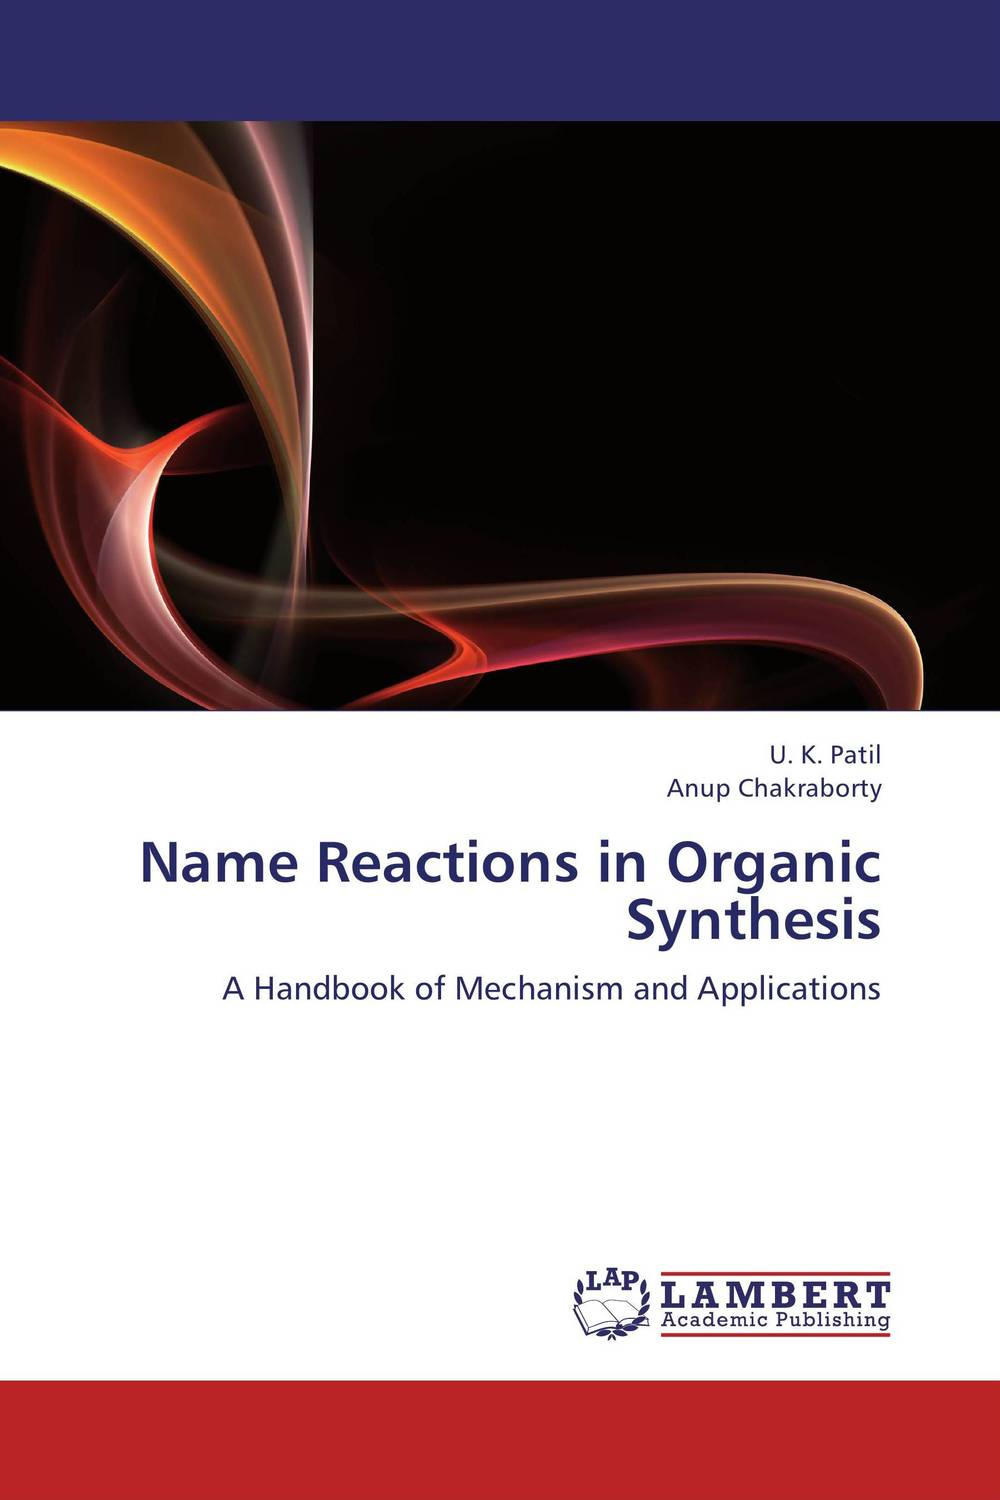 Name Reactions in Organic Synthesis dennis hall g boronic acids preparation and applications in organic synthesis medicine and materials